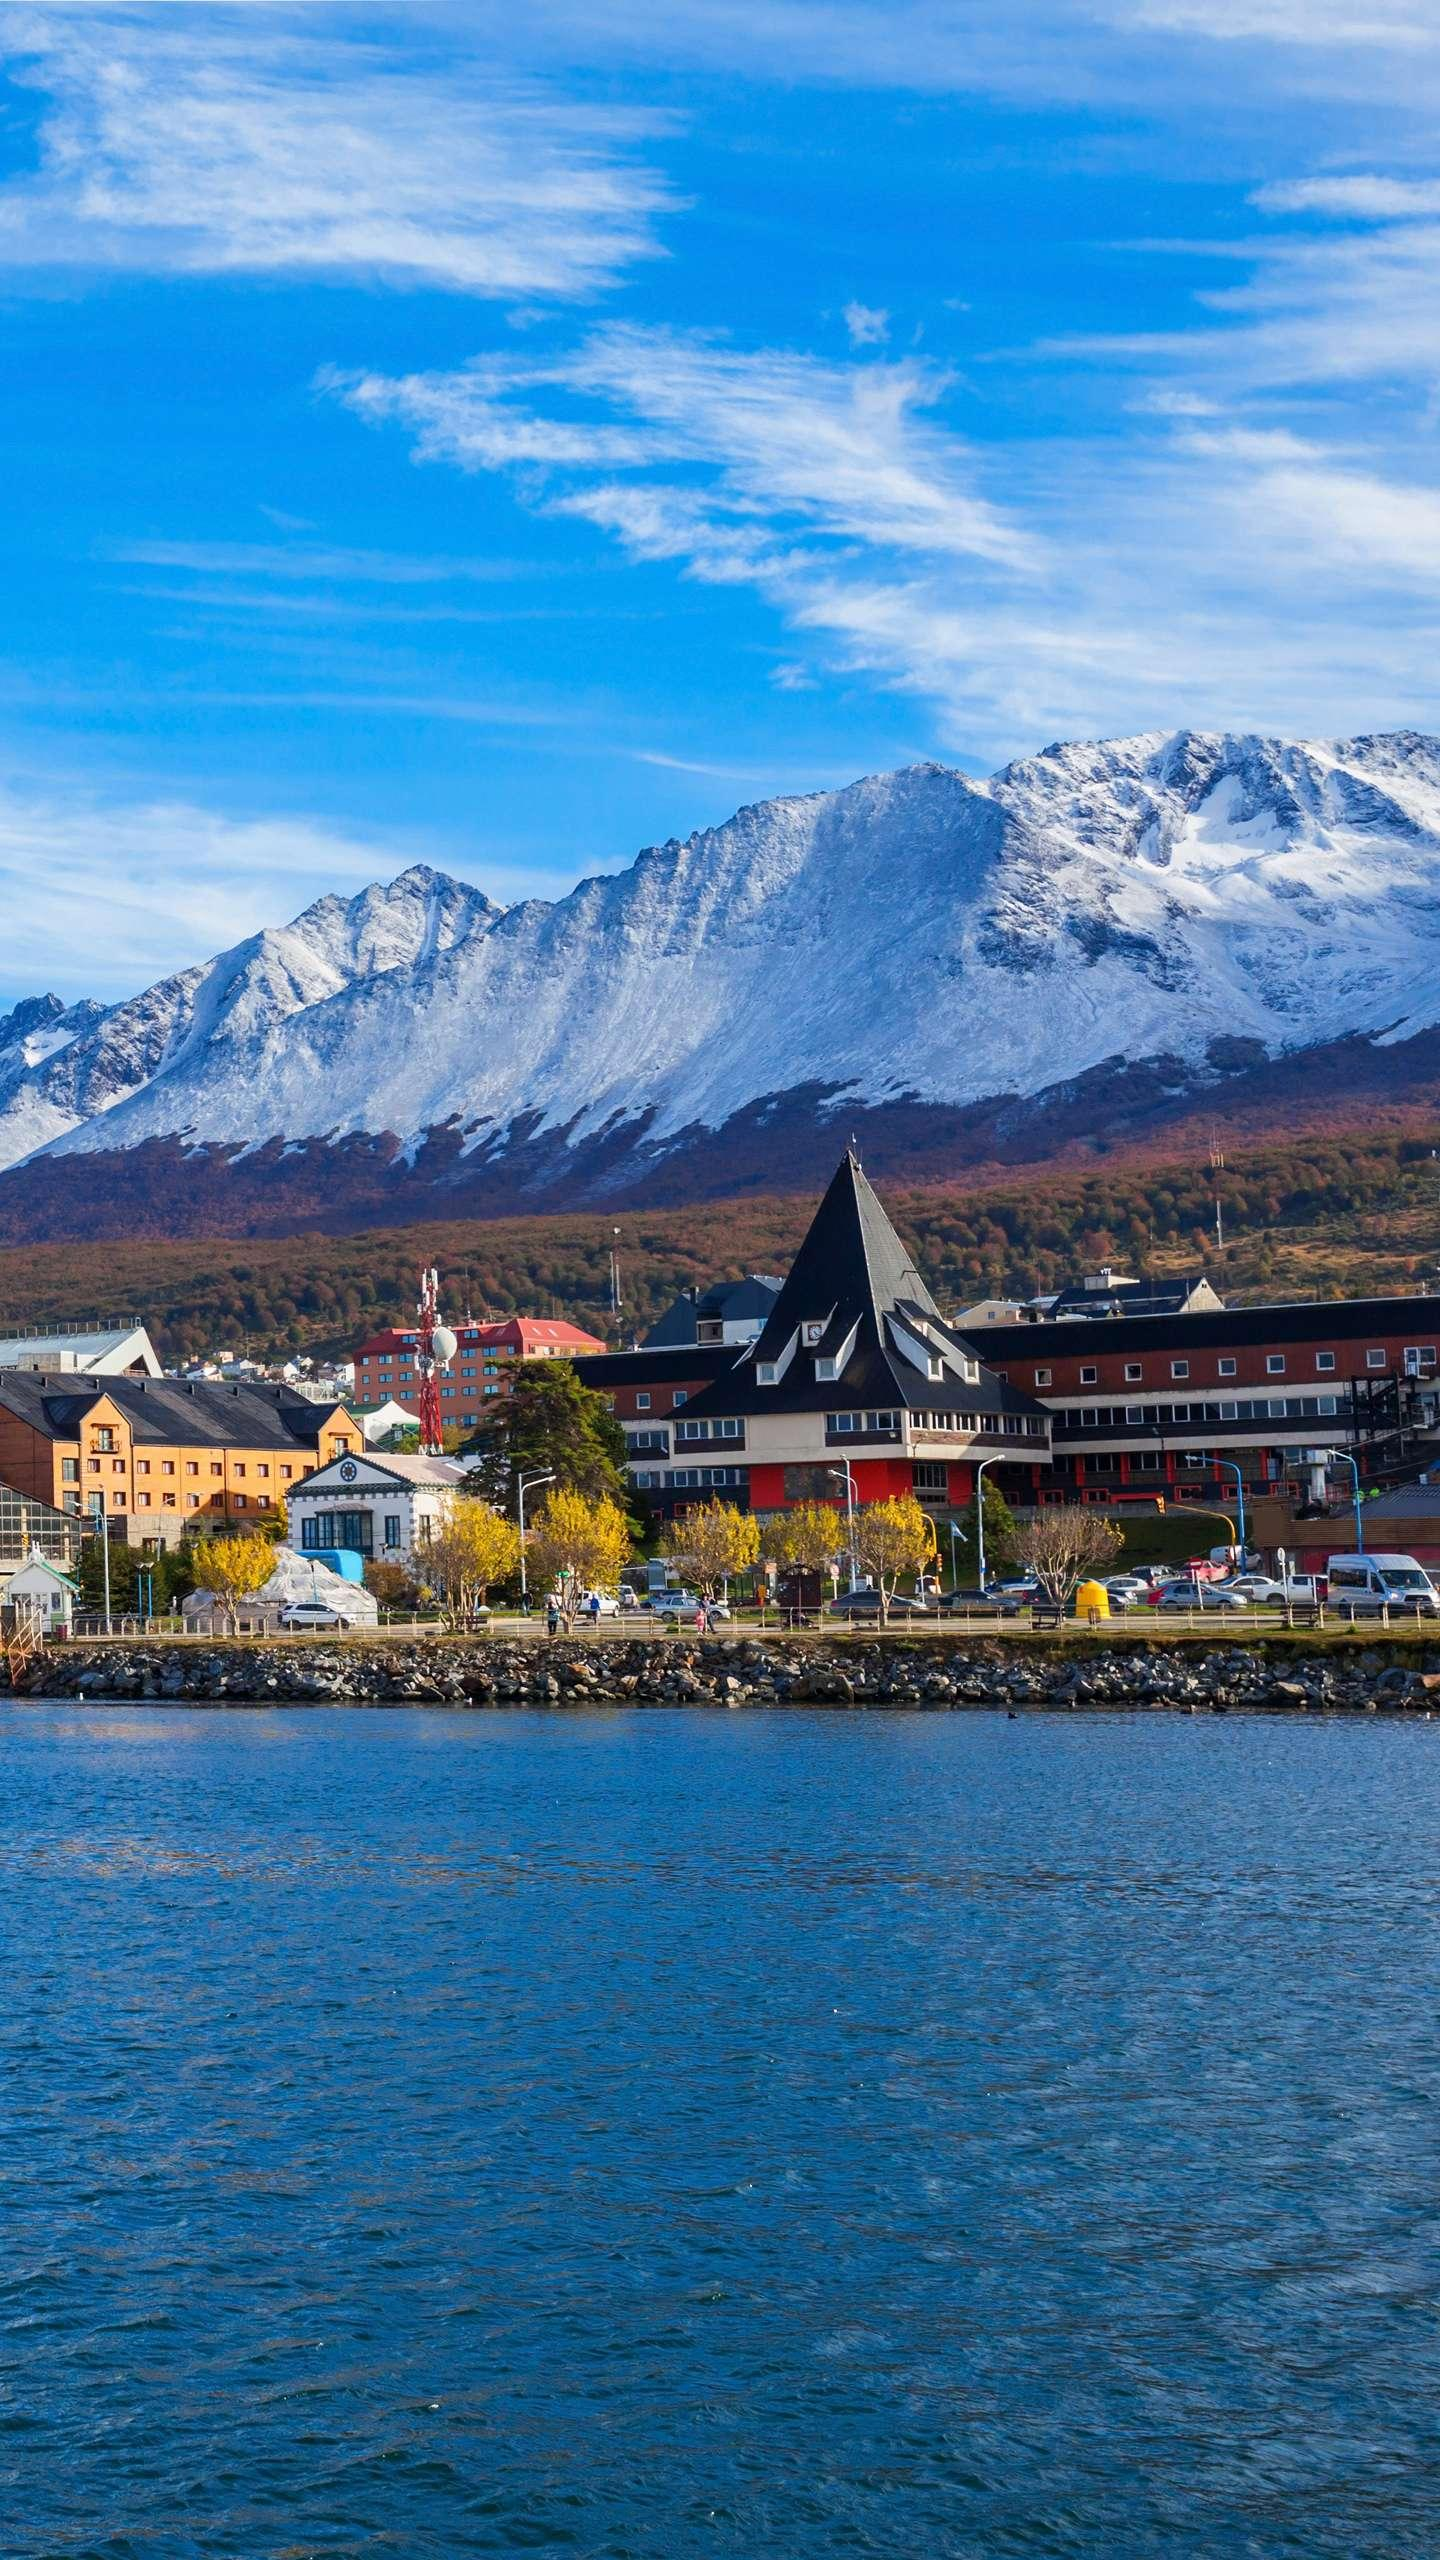 The end of the real world. The small town of Ushuaia, a small town in South America, with cold air and snow-capped peaks, allows people to feel the atmosphere of the South Pole in advance.